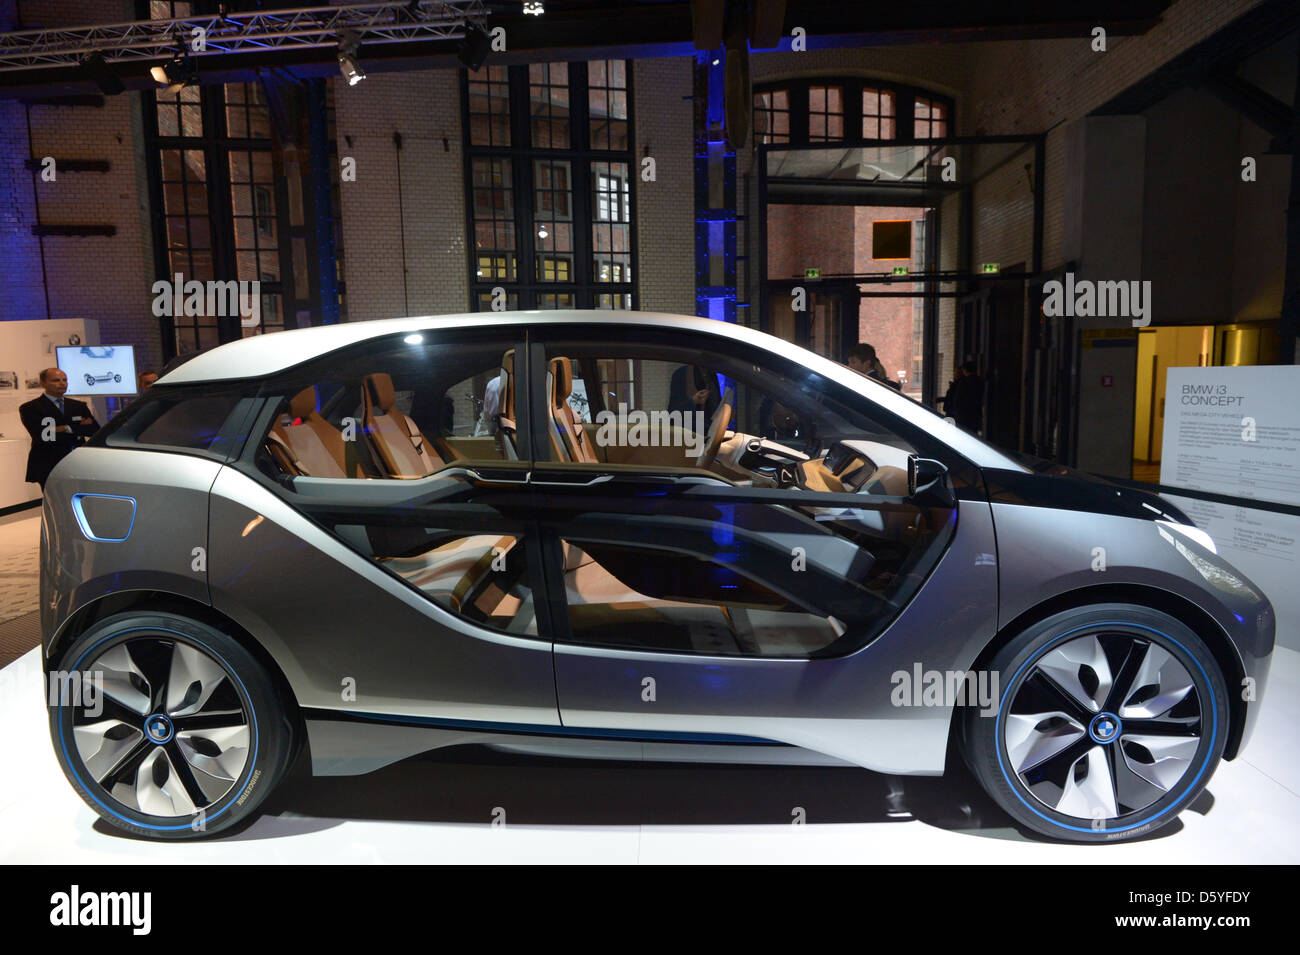 A Bmw I3 Concept Electric Car Is Unveiled At E Werk In Stock Photo